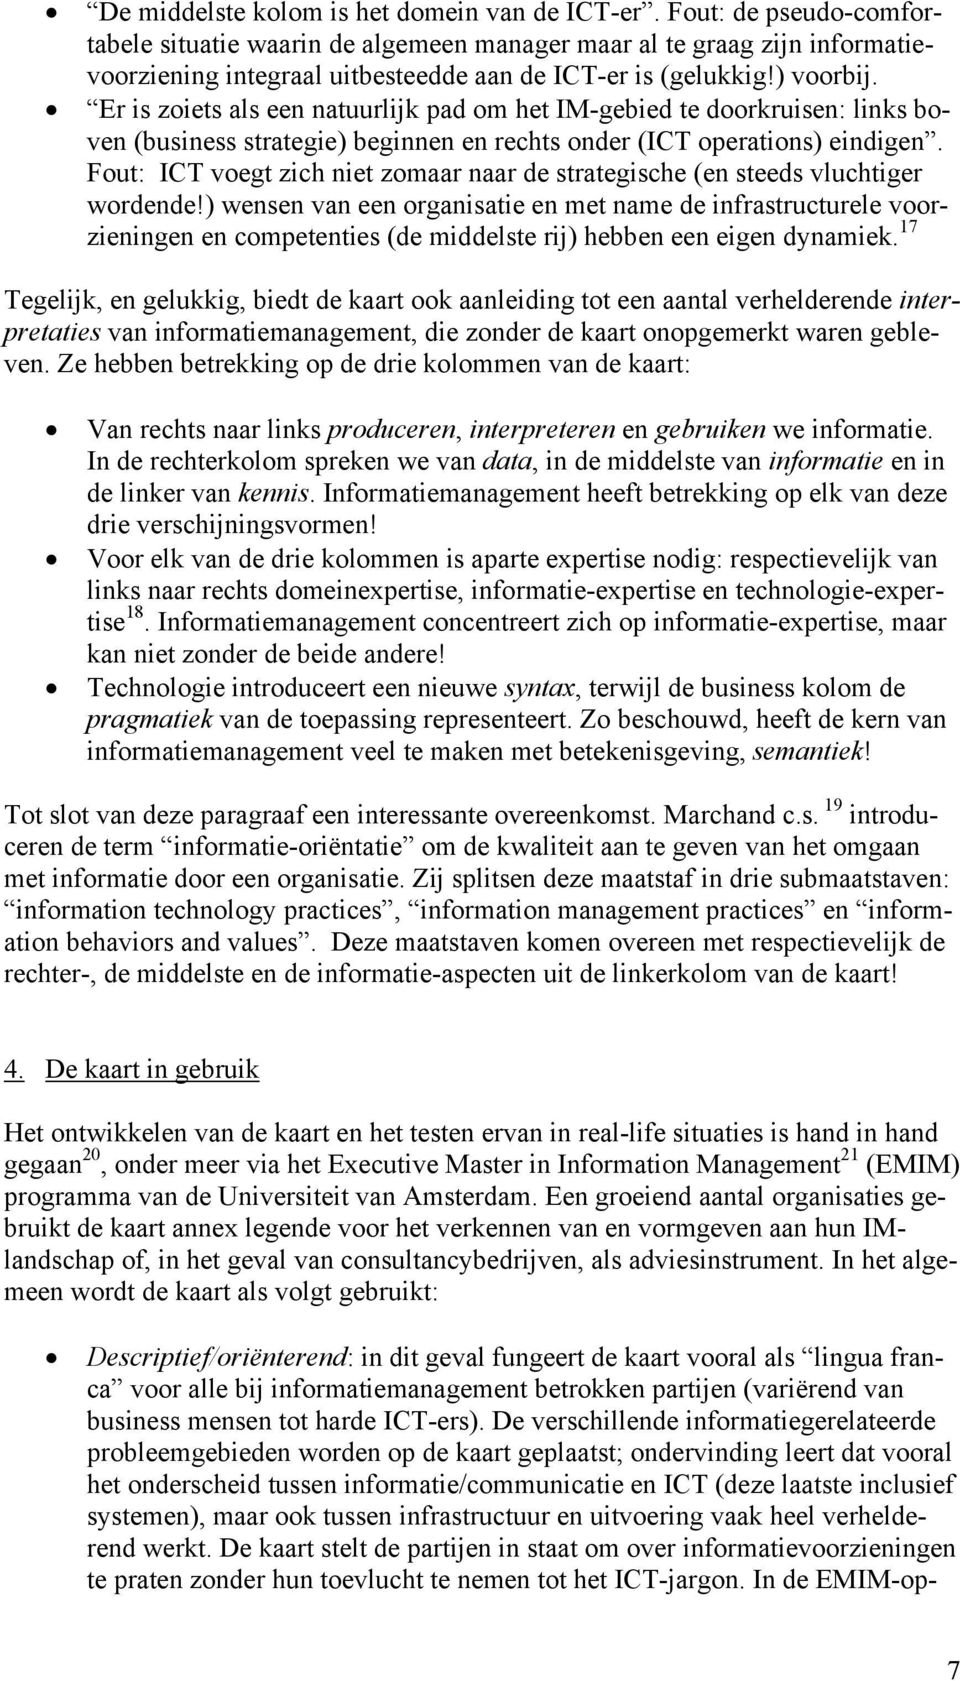 Er is zoiets als een natuurlijk pad om het IM-gebied te doorkruisen: links boven (business strategie) beginnen en rechts onder (ICT operations) eindigen.